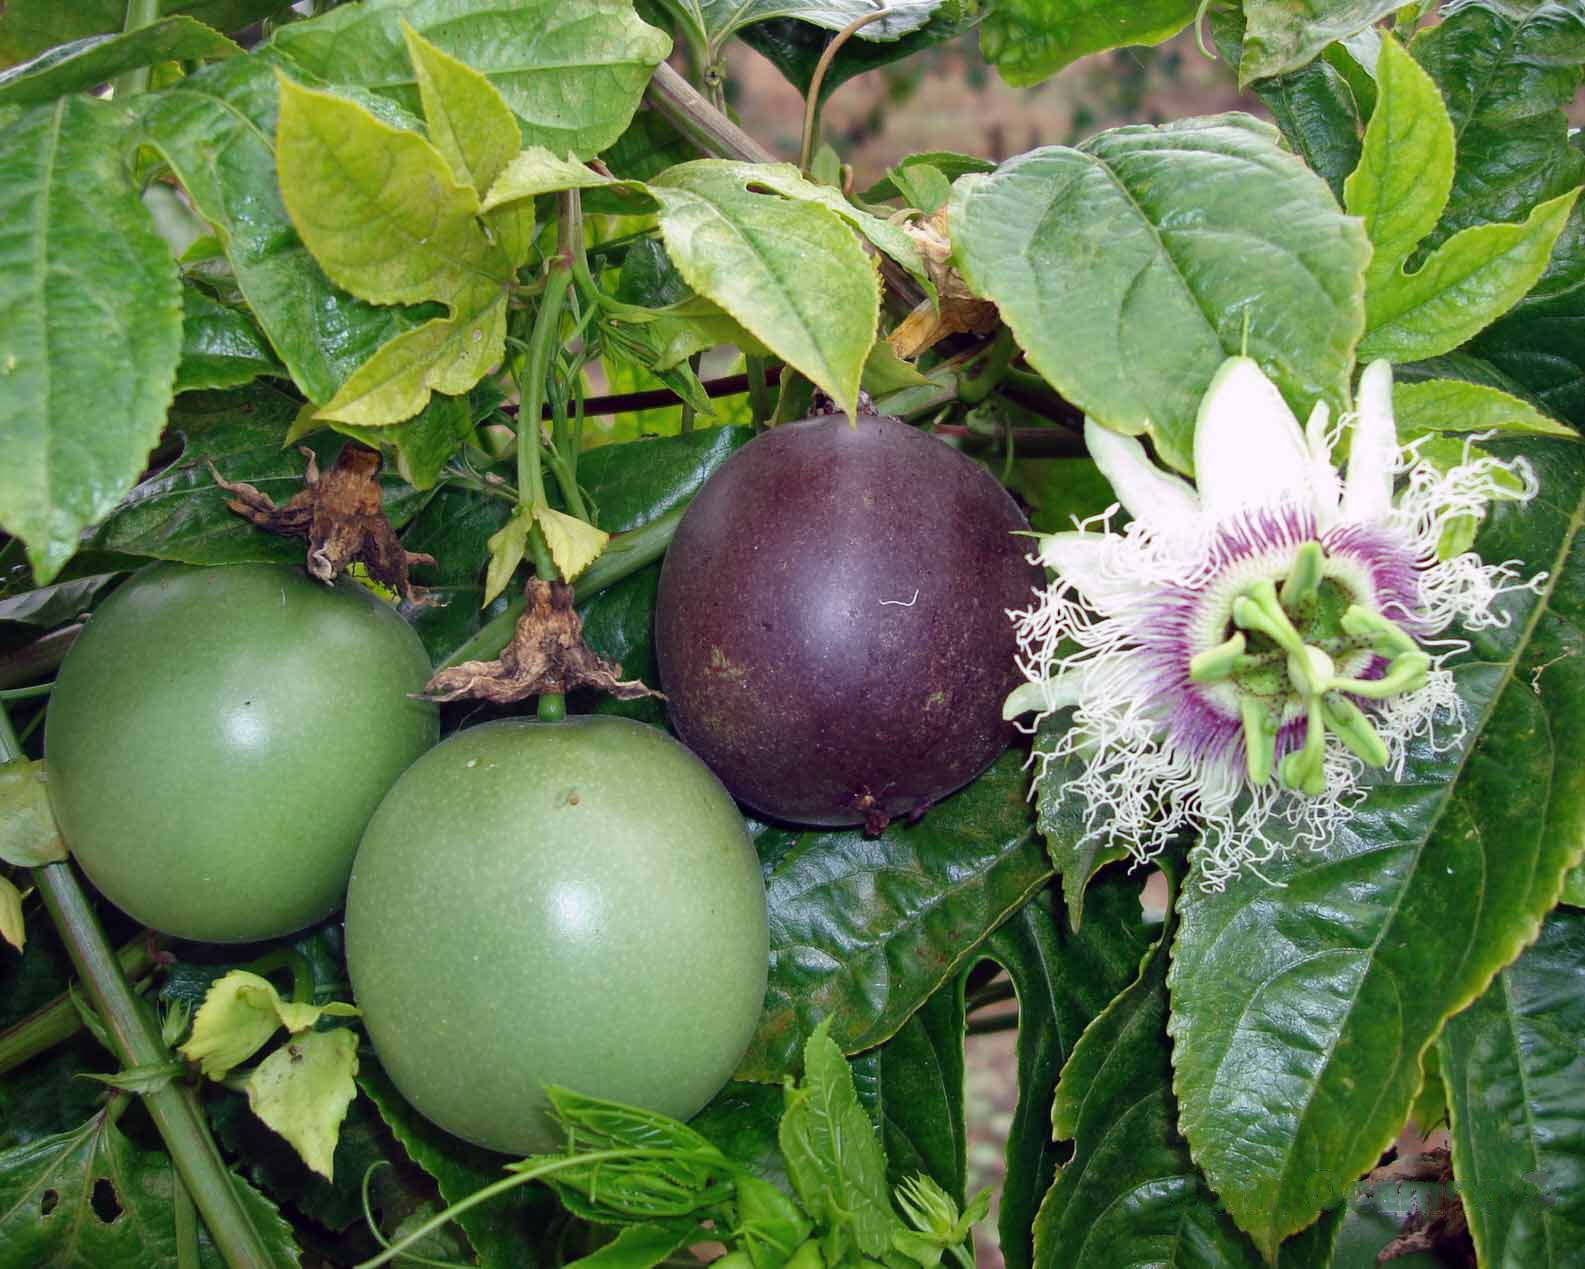 Financial potential of grafted passion fruit farming in Kenya